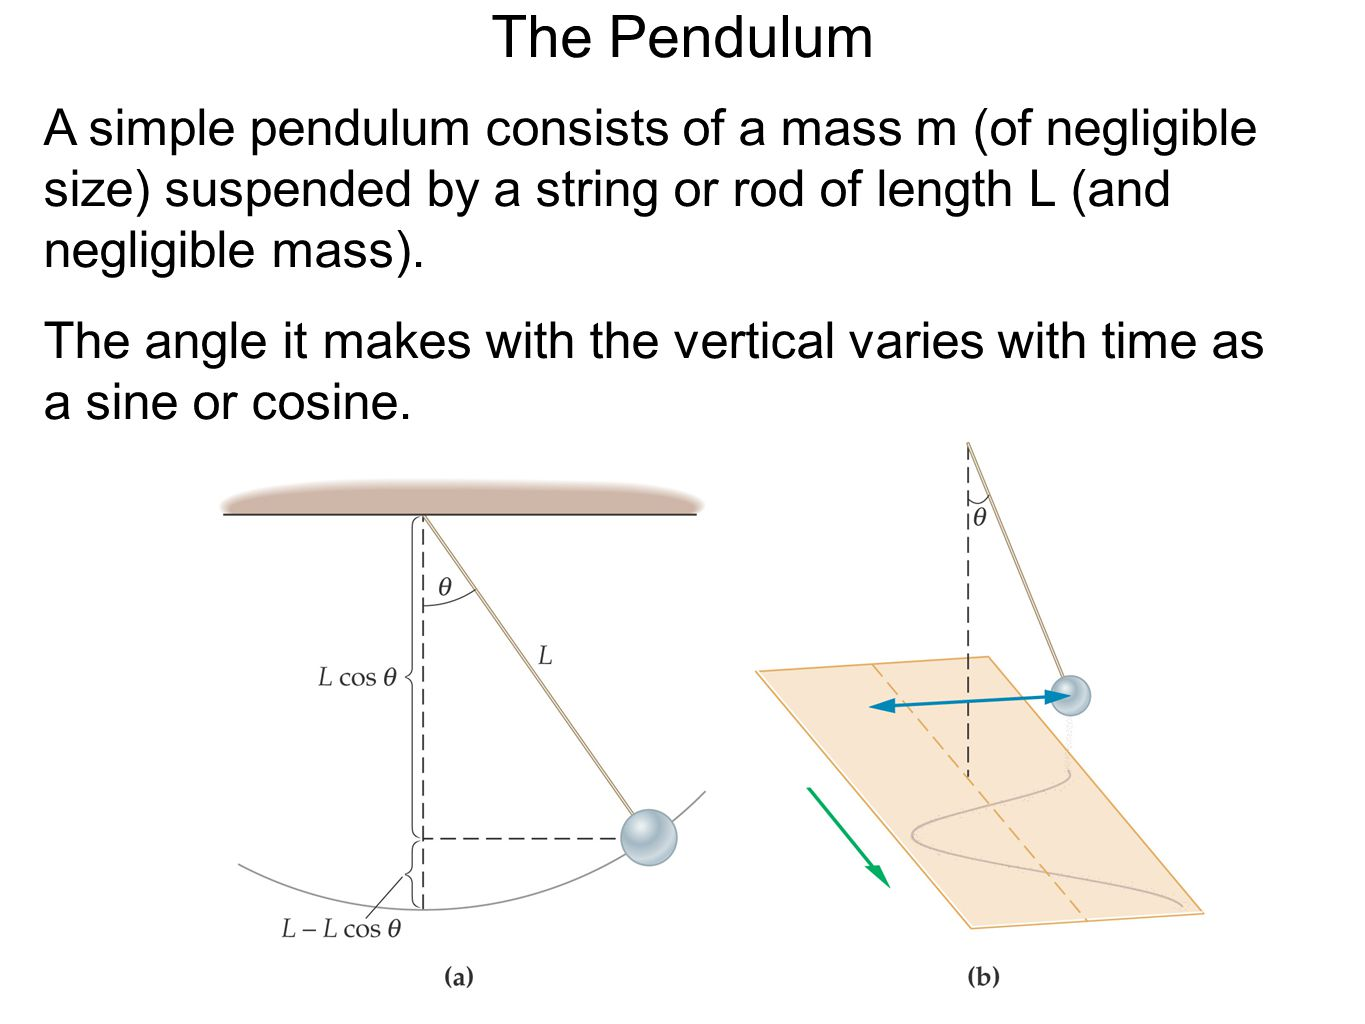 The Pendulum A simple pendulum consists of a mass m (of negligible size) suspended by a string or rod of length L (and negligible mass).